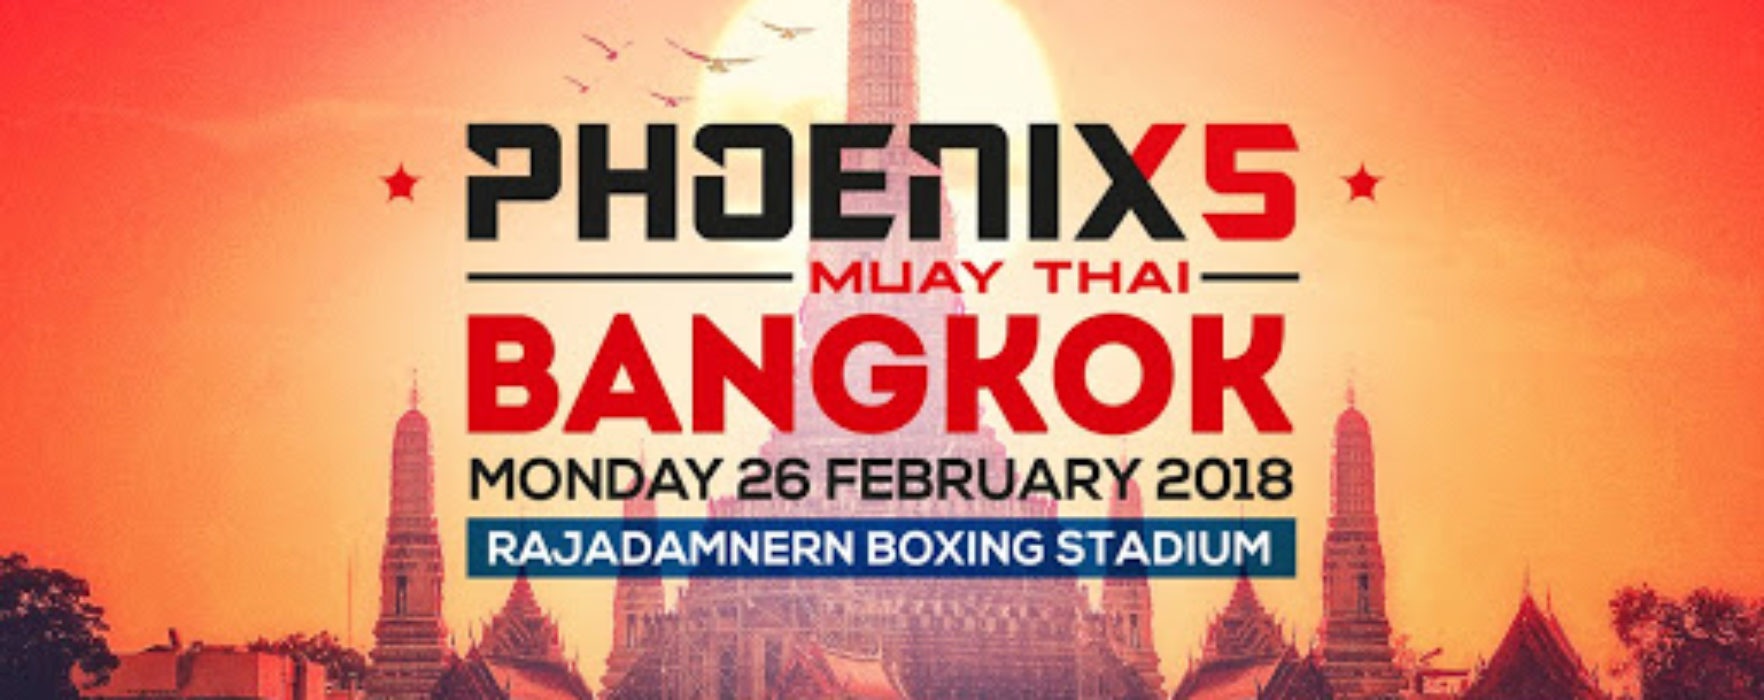 (English) Phoenix #5 at Rajadamnern